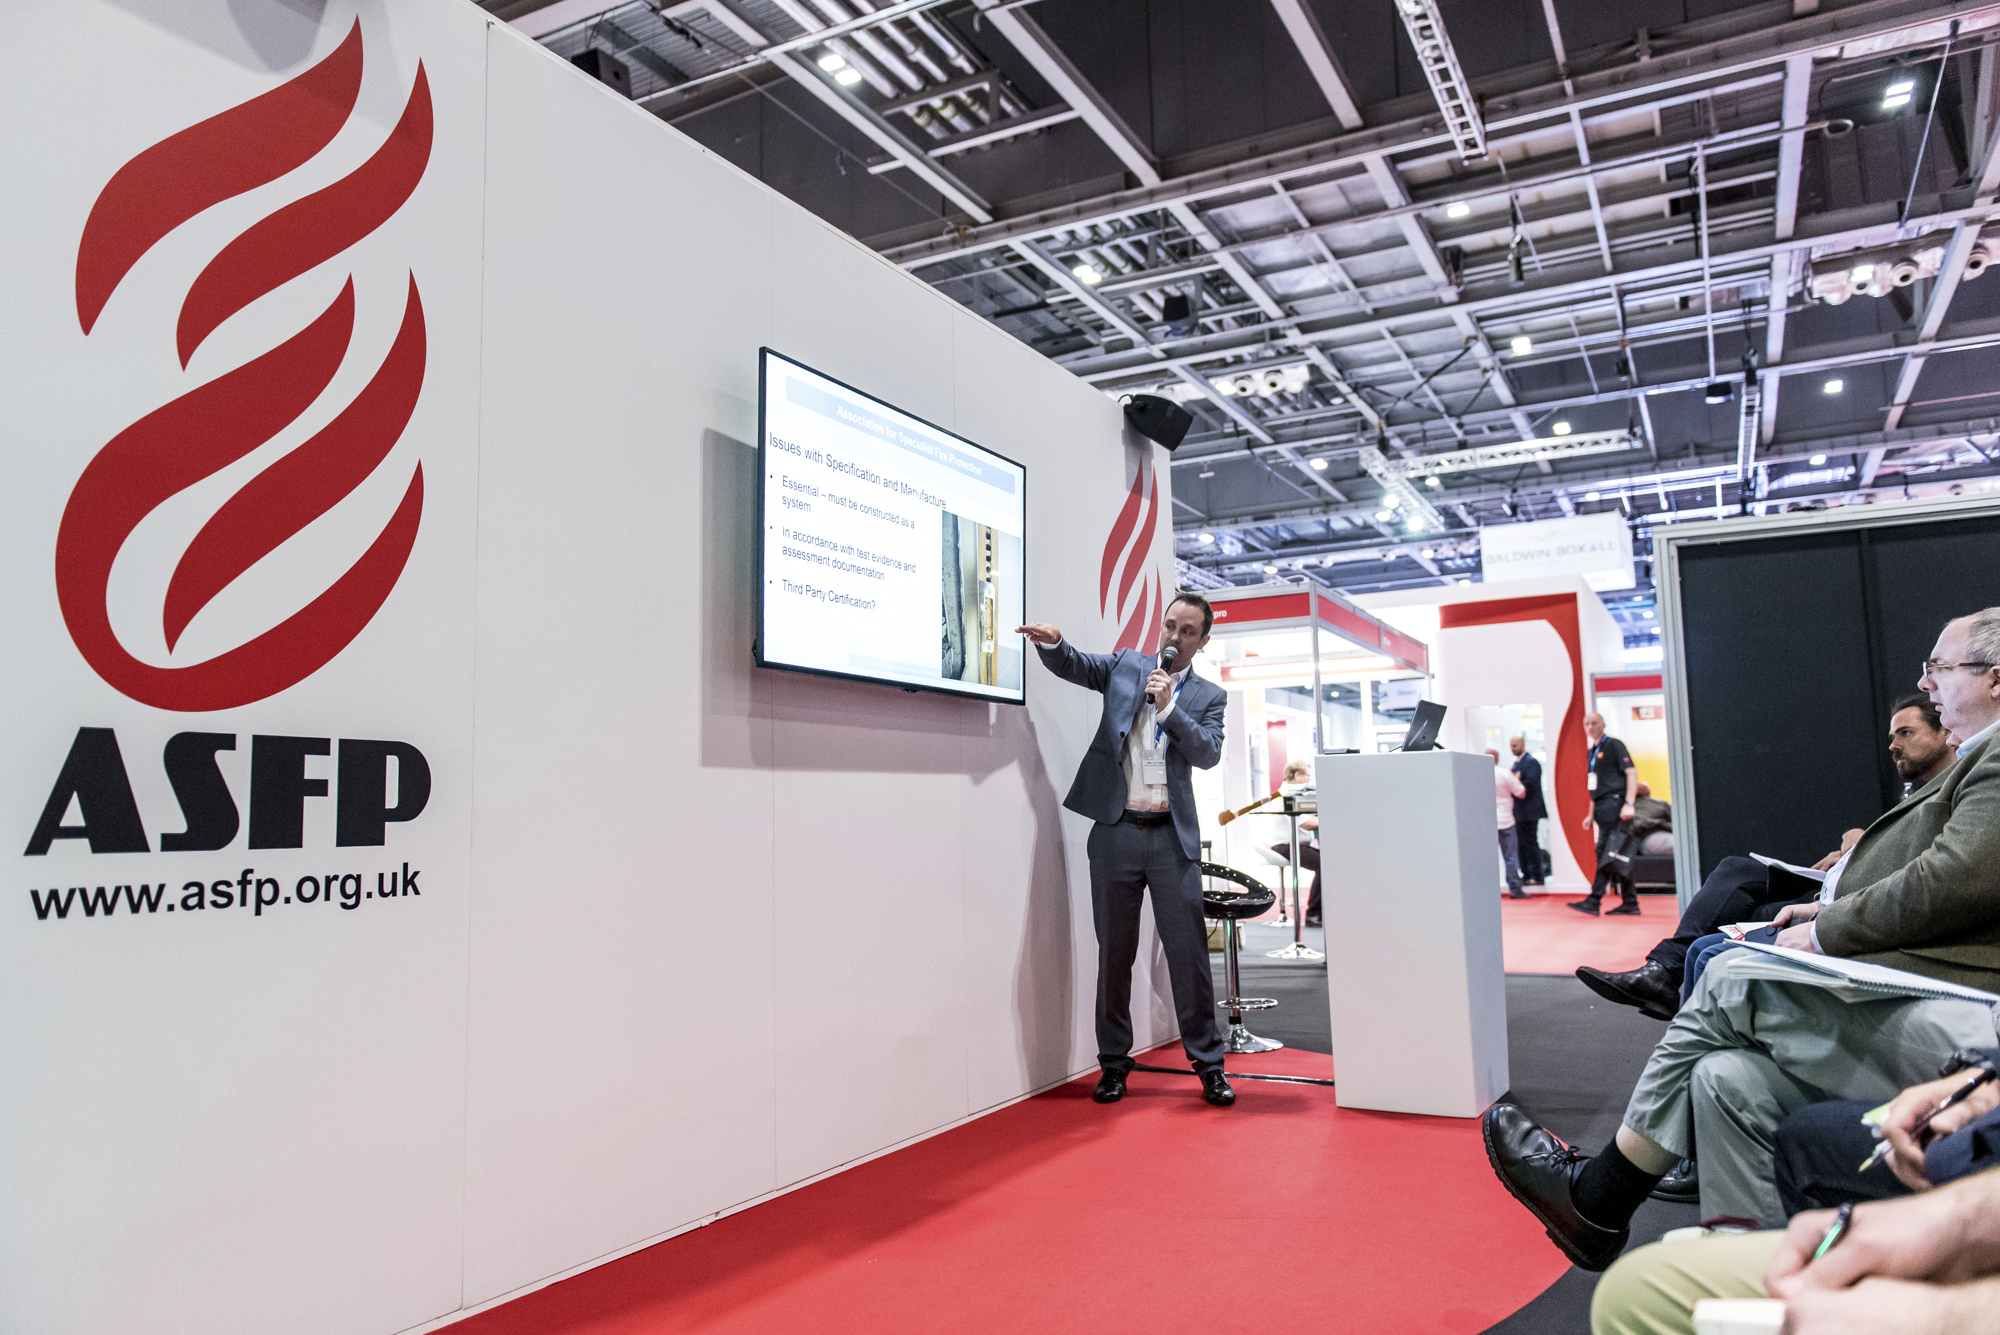 An engaging seminar at the ASFP stand at FIREX 2019